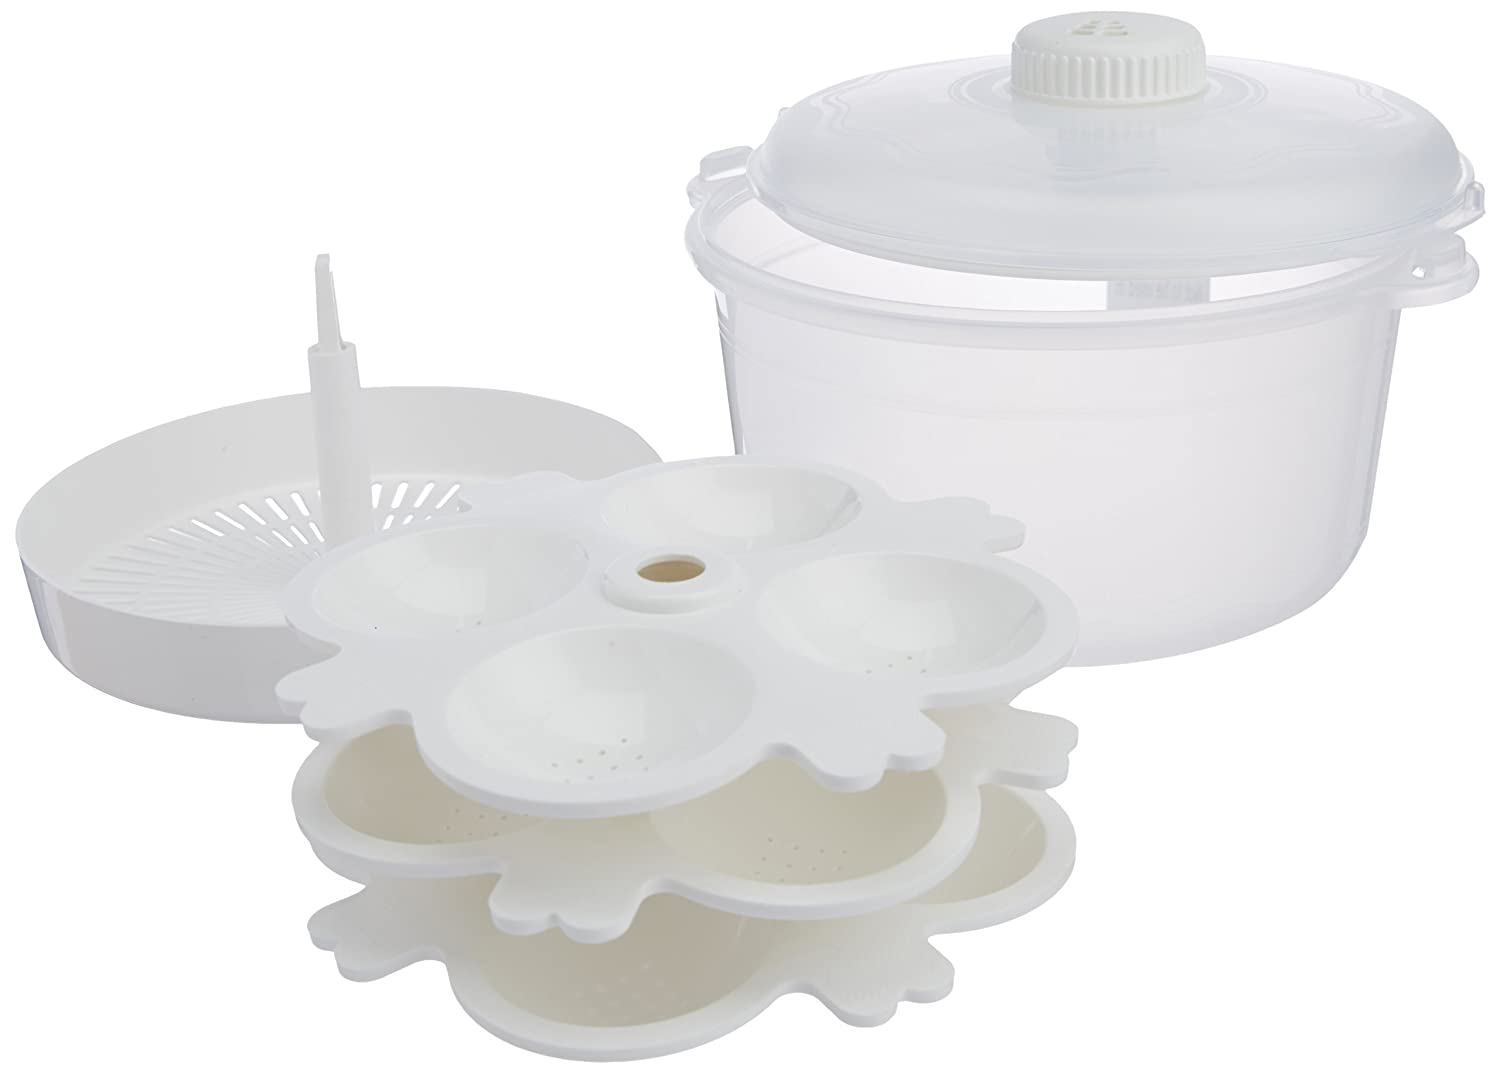 Buy Signoraware Microwave Cooker Set 3 Litres 7 Pieces White Signora Quick Steamer Online At Low Prices In India